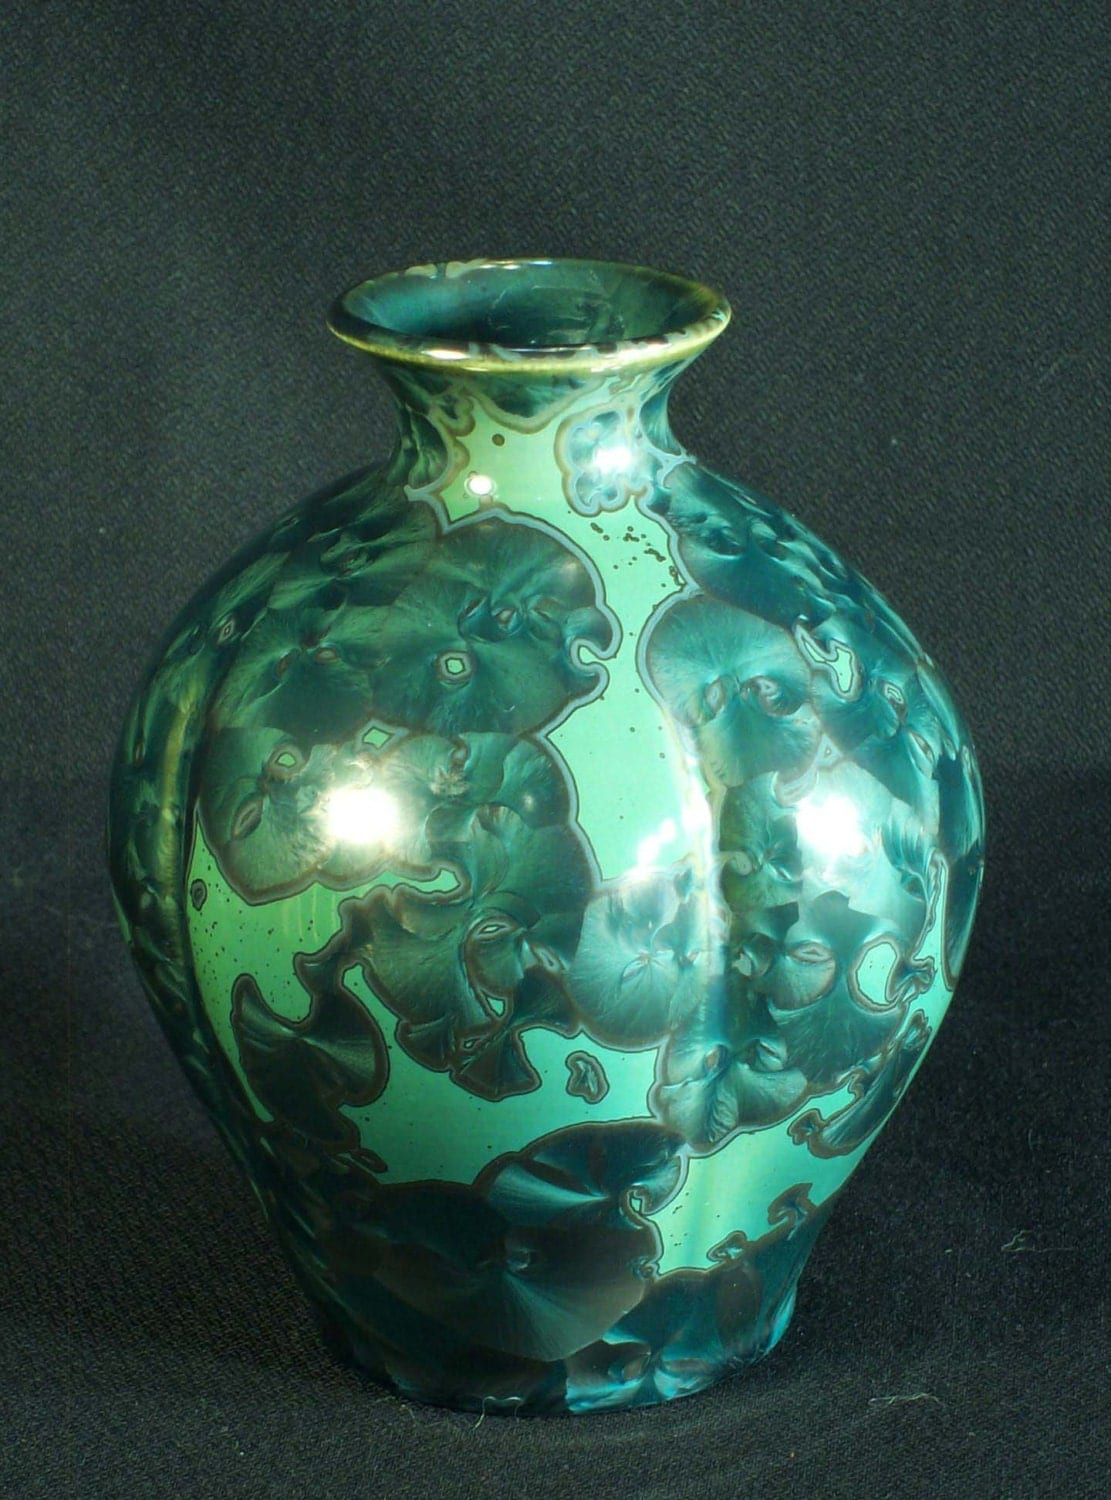 Teal and Mint Green Crystalline Glaze Vase - MorganHarrisPottery